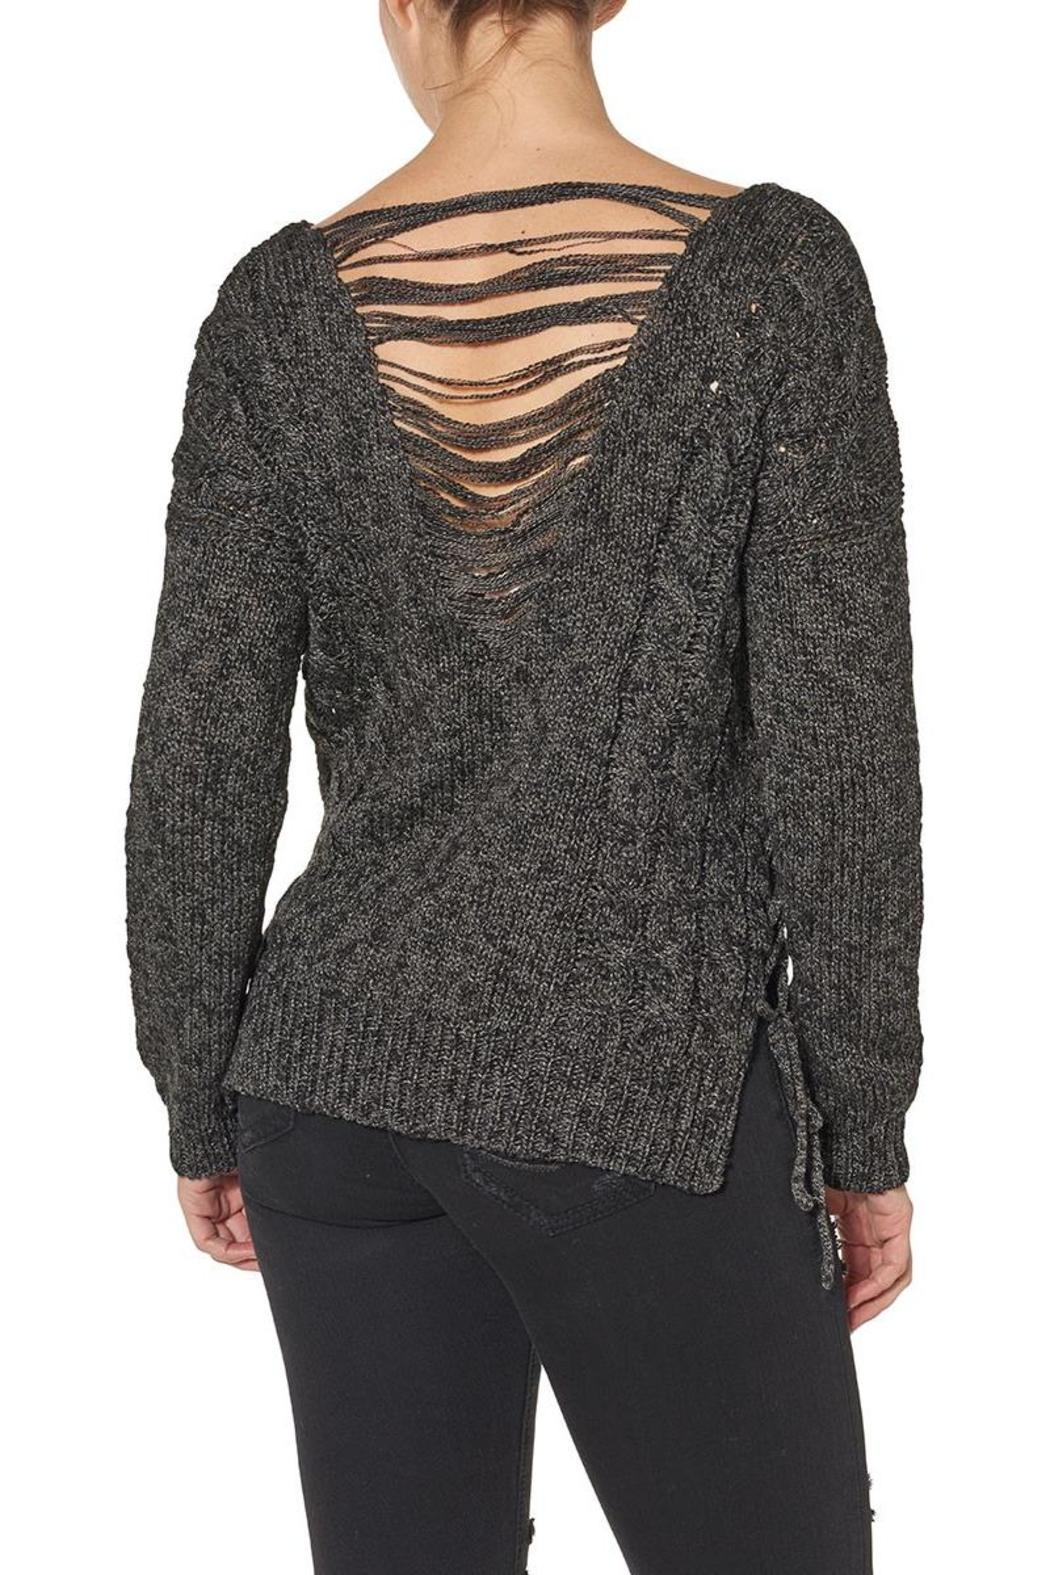 Silver Jeans Co. Lace Up Back Detailed Sweater - Front Full Image